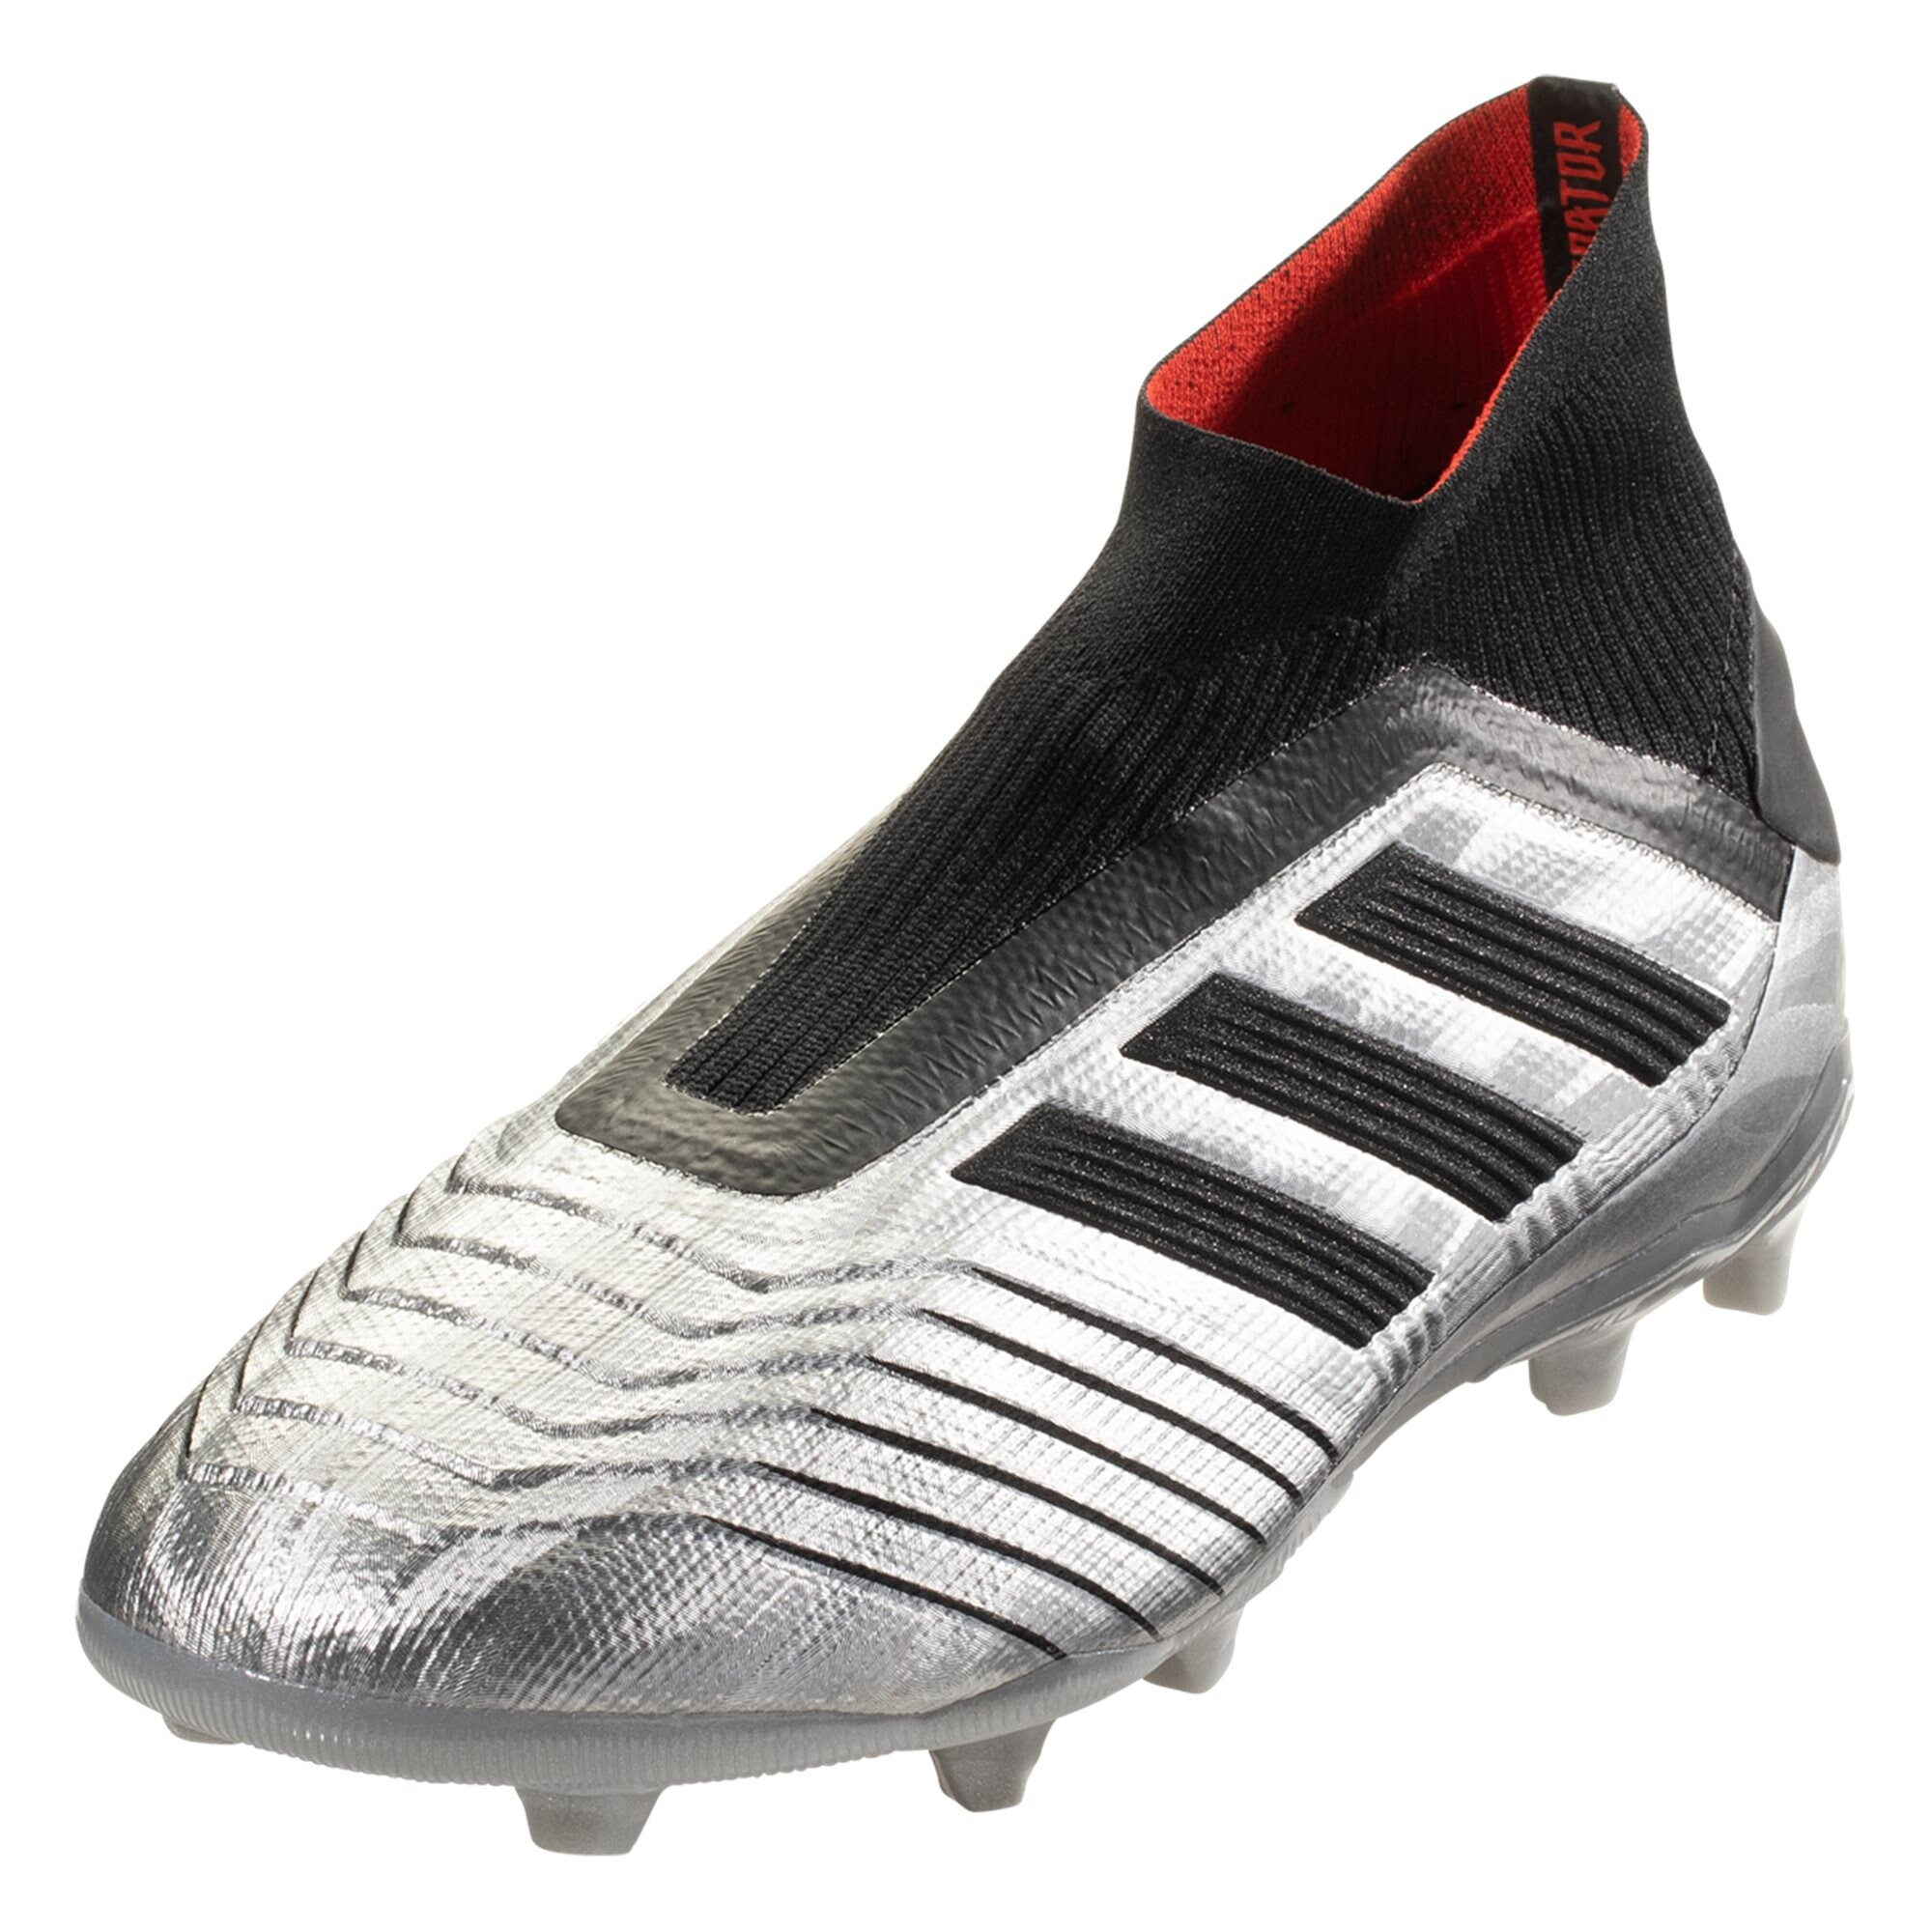 33e40b403 adidas Predator 19+ FG Junior Soccer Cleat – Metallic Silver   Black   Hi-Res  Red